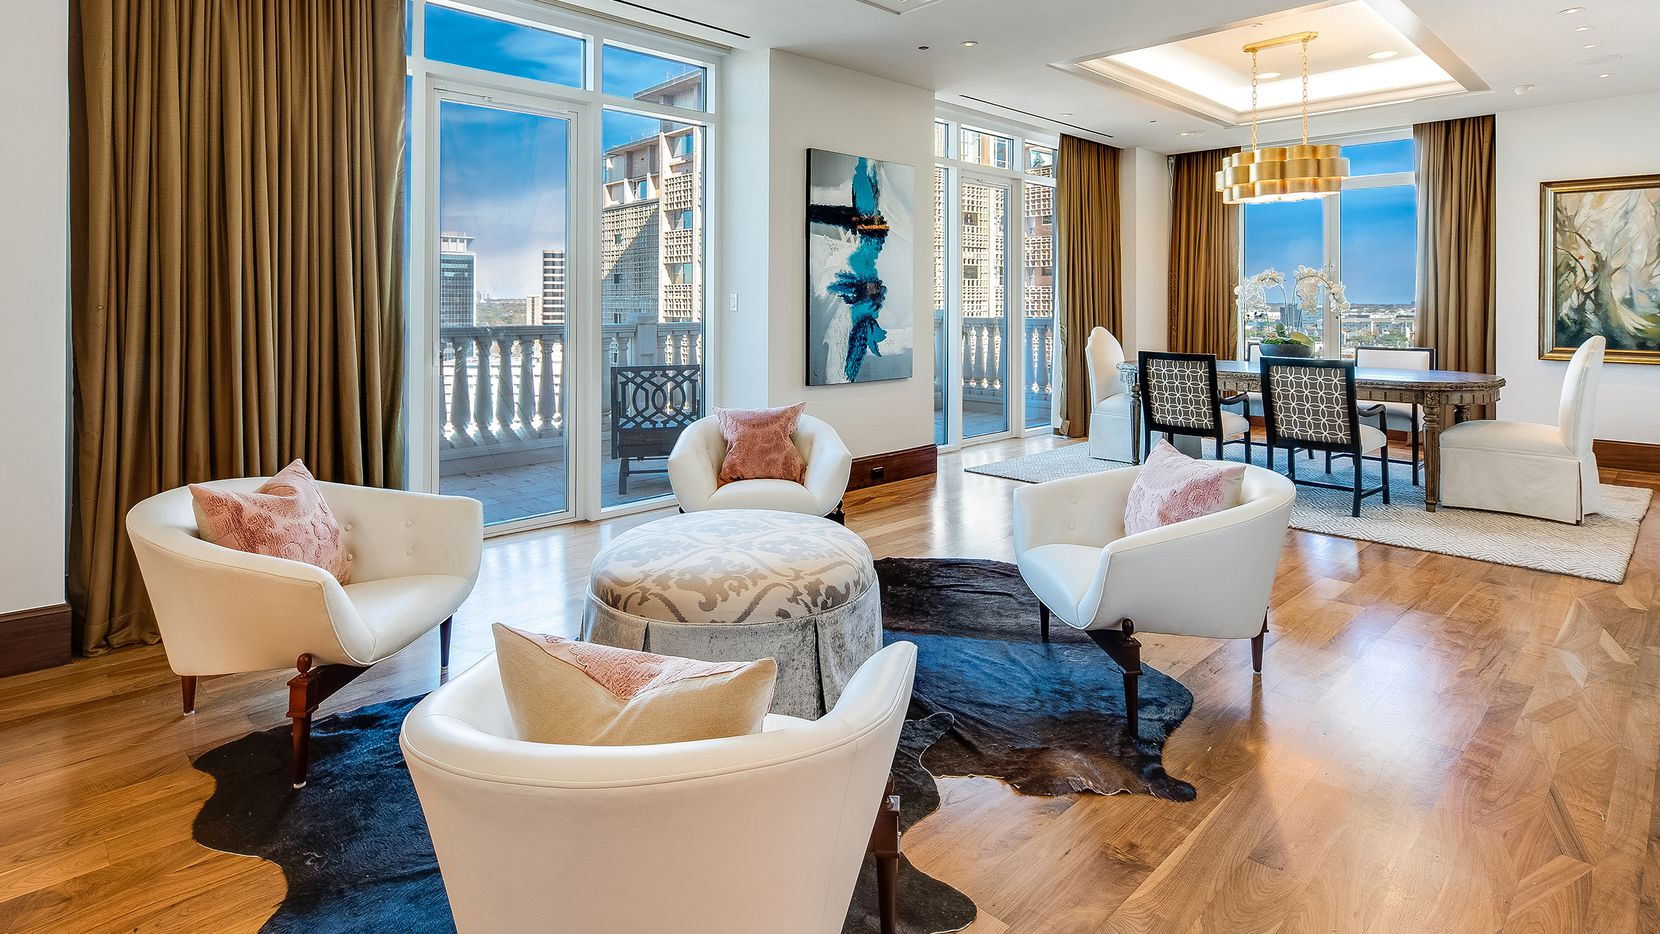 The two-floor penthouse on the 18th floor at the Vendôme is a custom-designed, contemporary-style home with 6,600 square feet of living space.